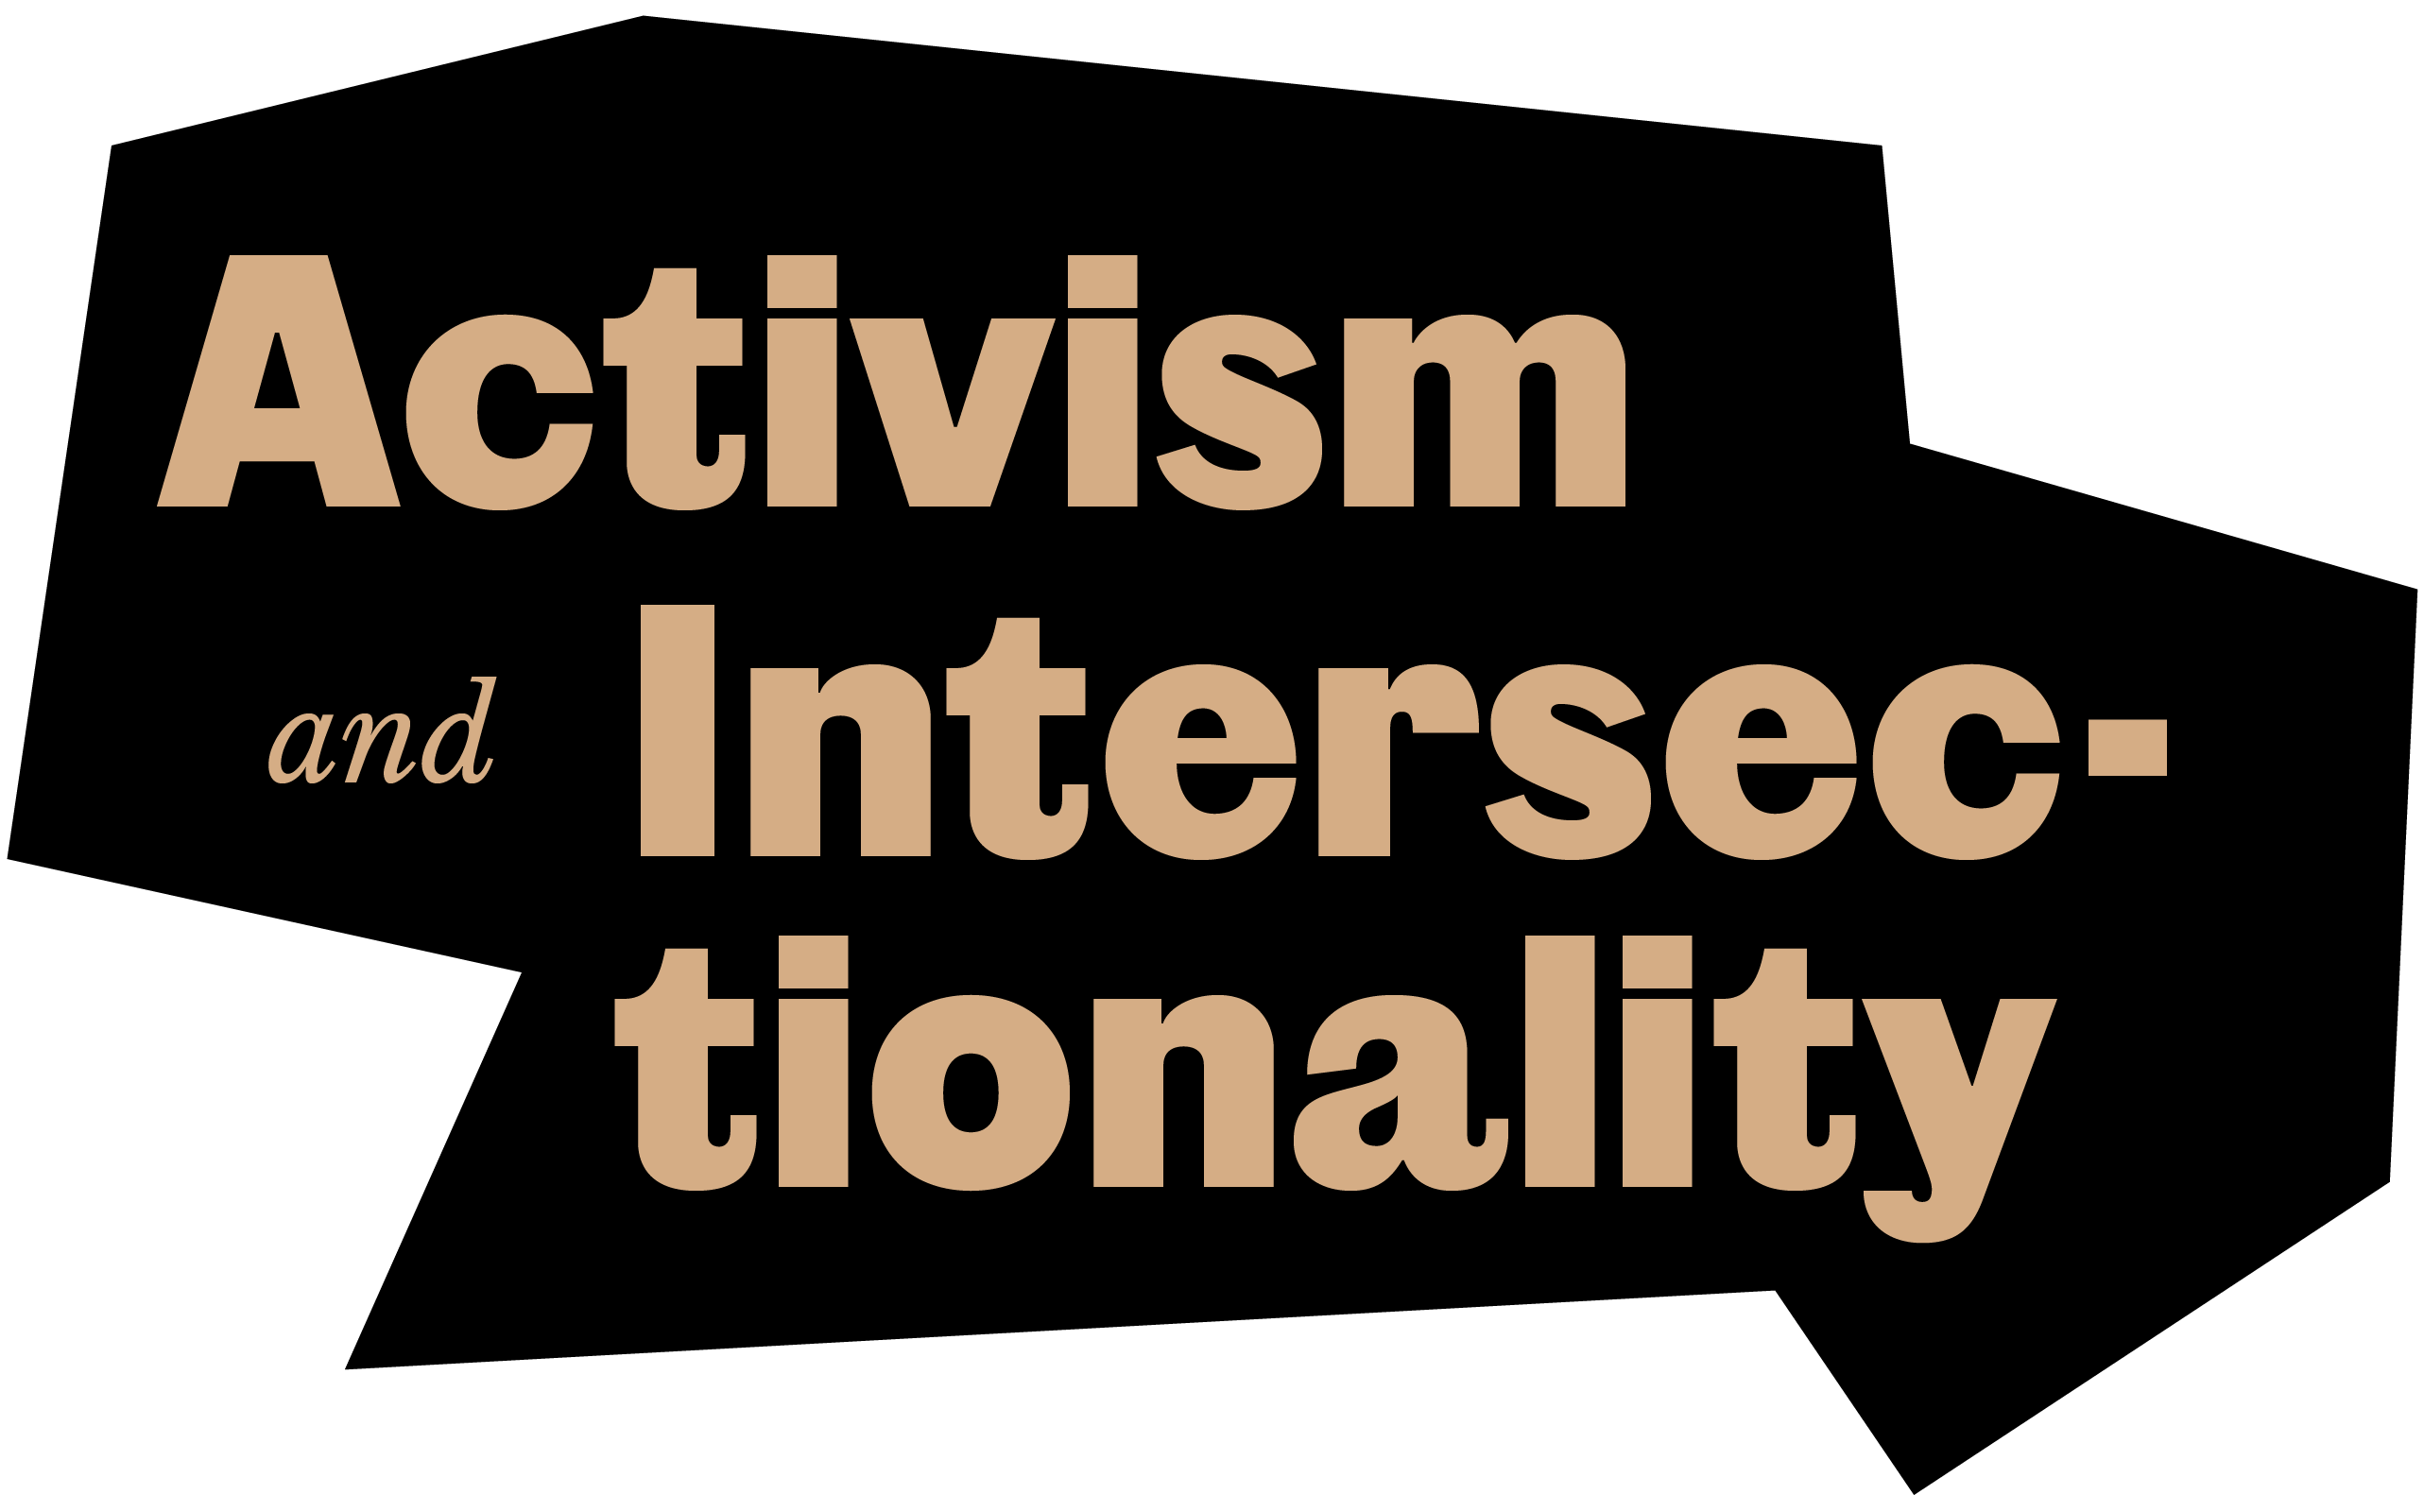 Title: Activism and Intersectionality